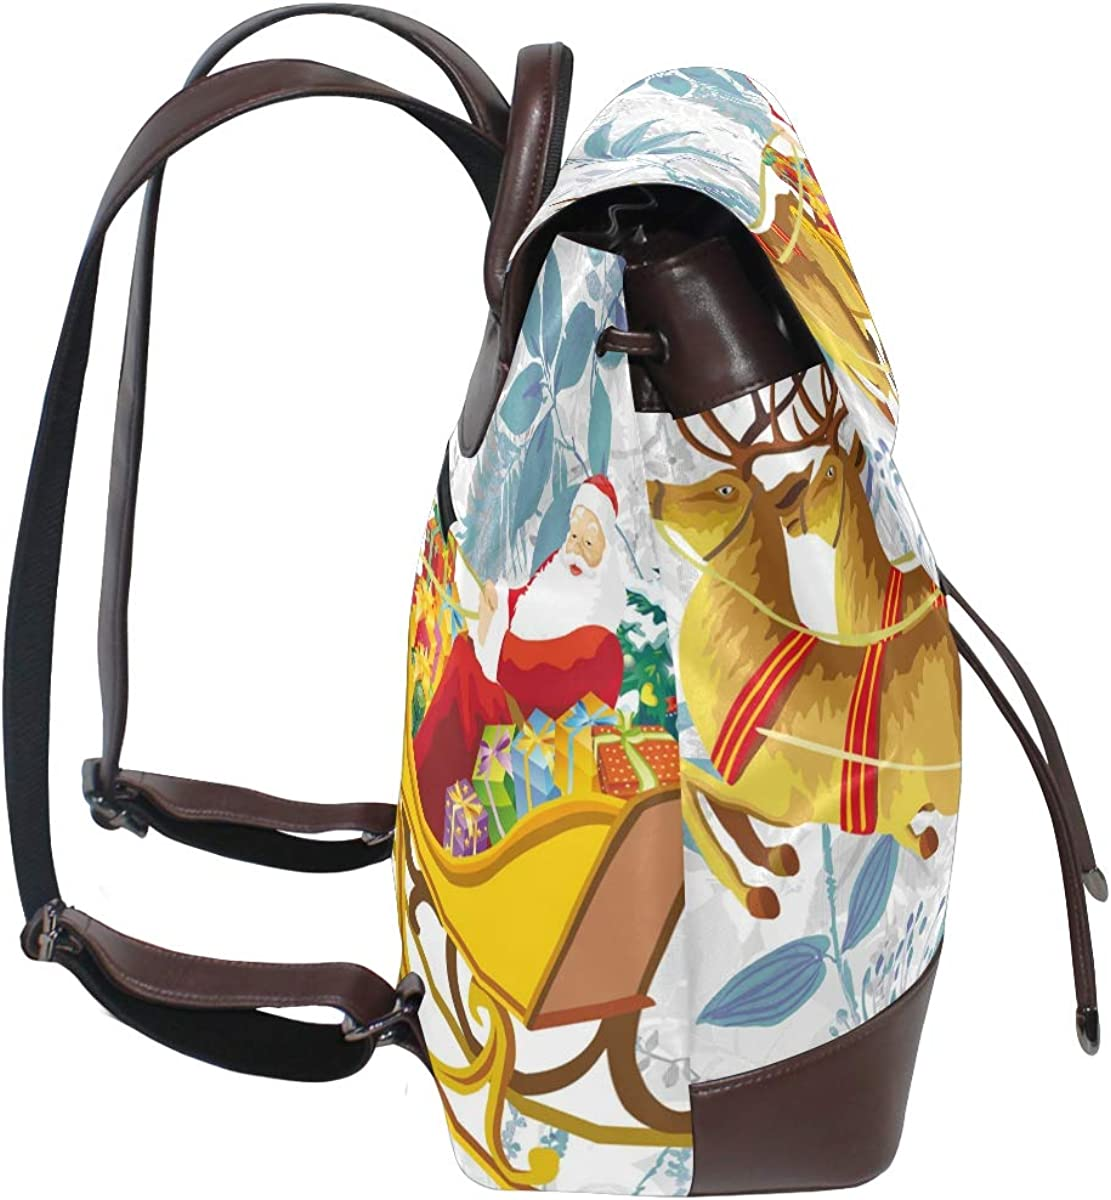 PU Leather Shoulder Bag,Santa With Sleigh Backpack,Portable Travel School Rucksack,Satchel with Top Handle